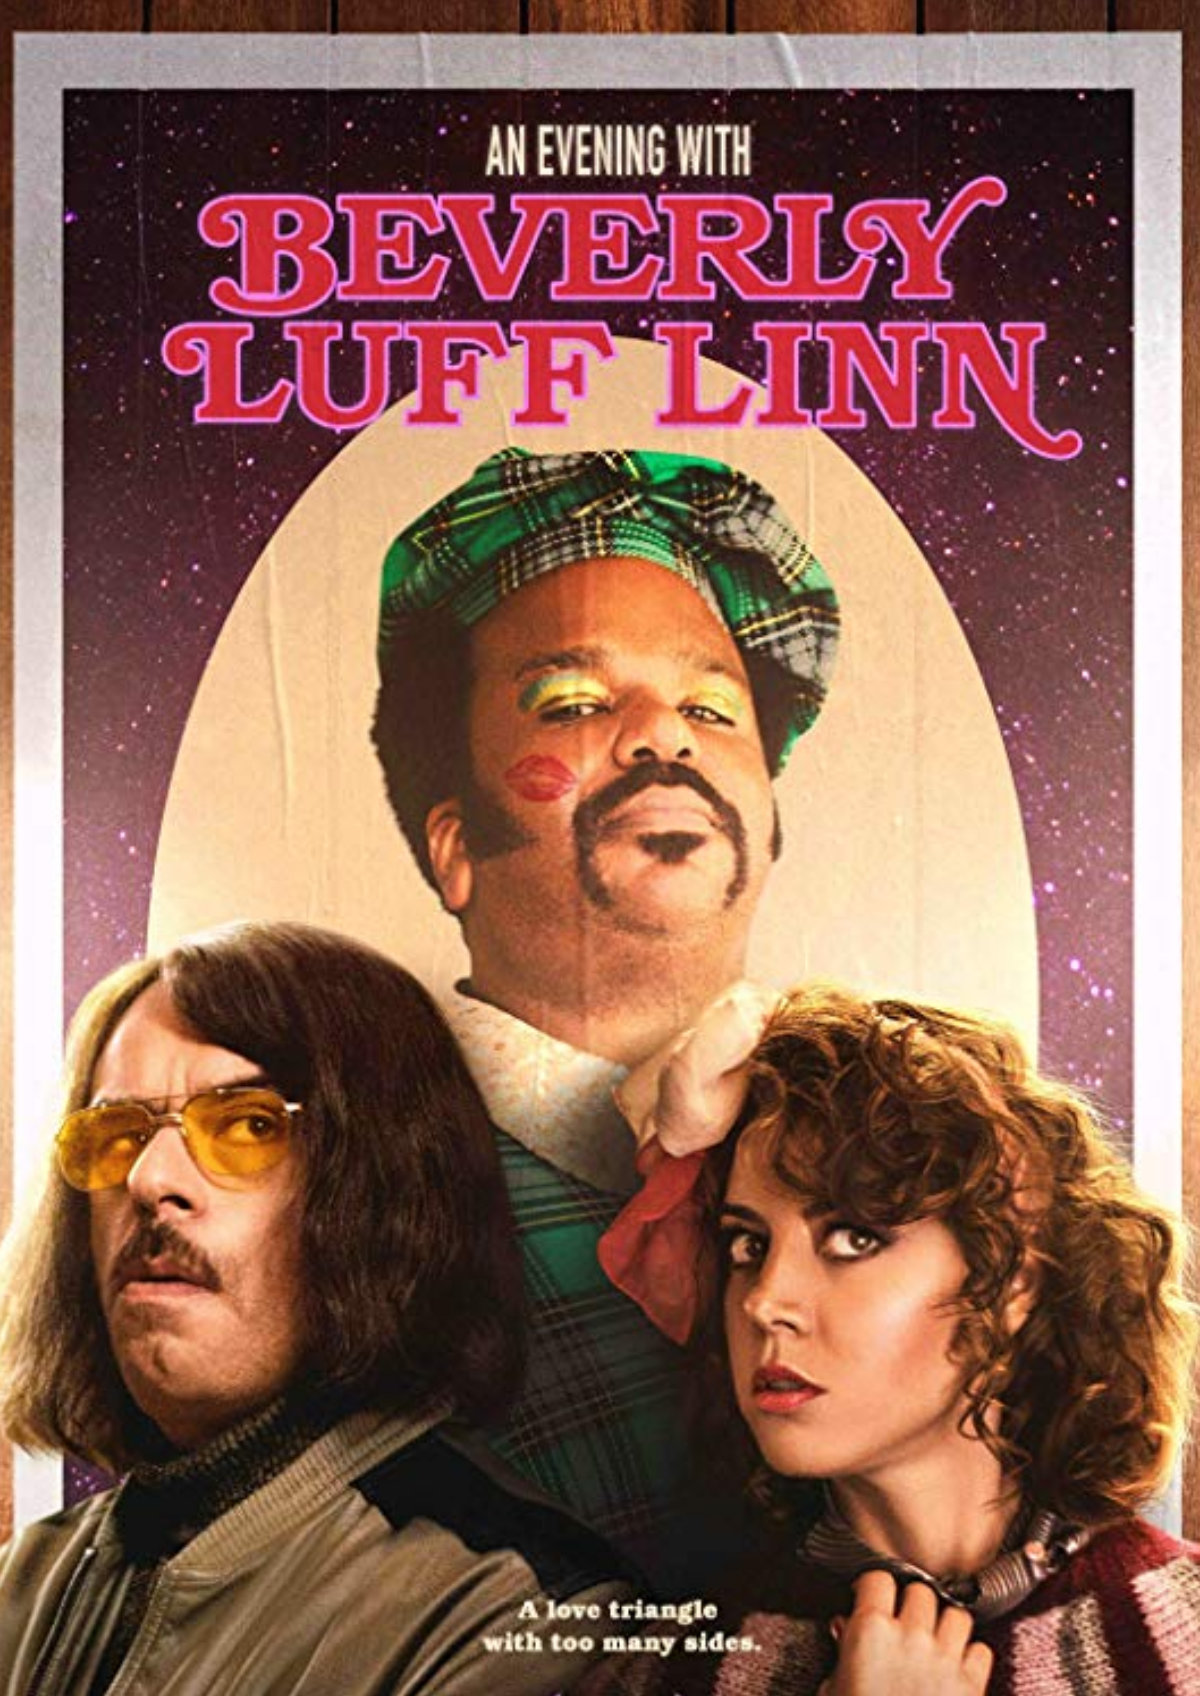 'An Evening With Beverly Luff Linn' movie poster